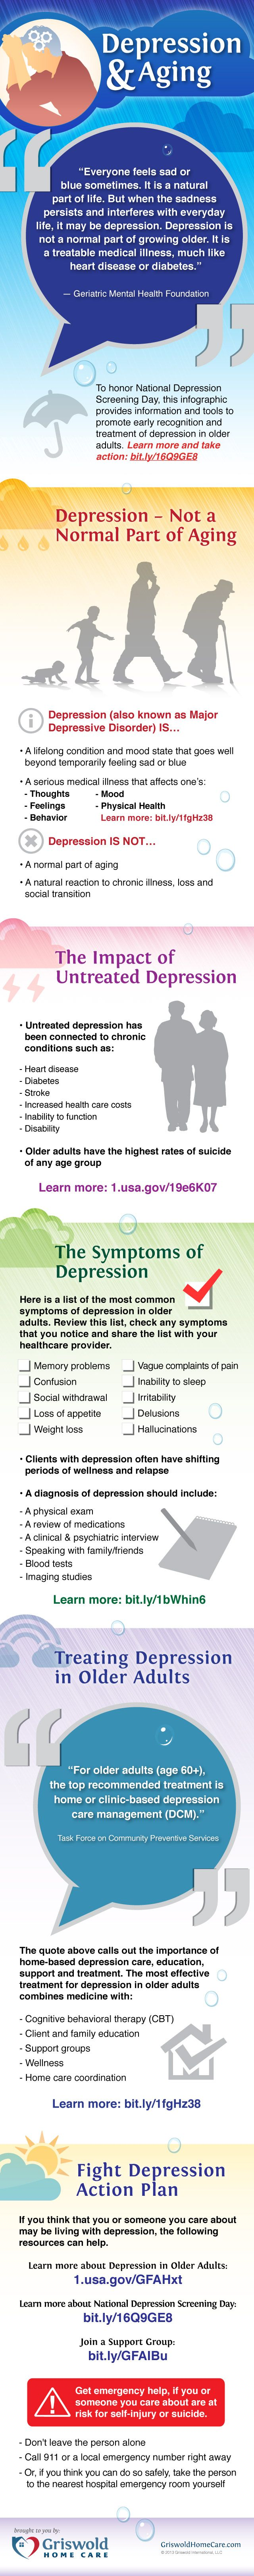 To honor National Depression Screening Day, this infographic provides information and tools to promote early recognition and treatment of depression in older adults. Learn more and take action! #depression #infographic